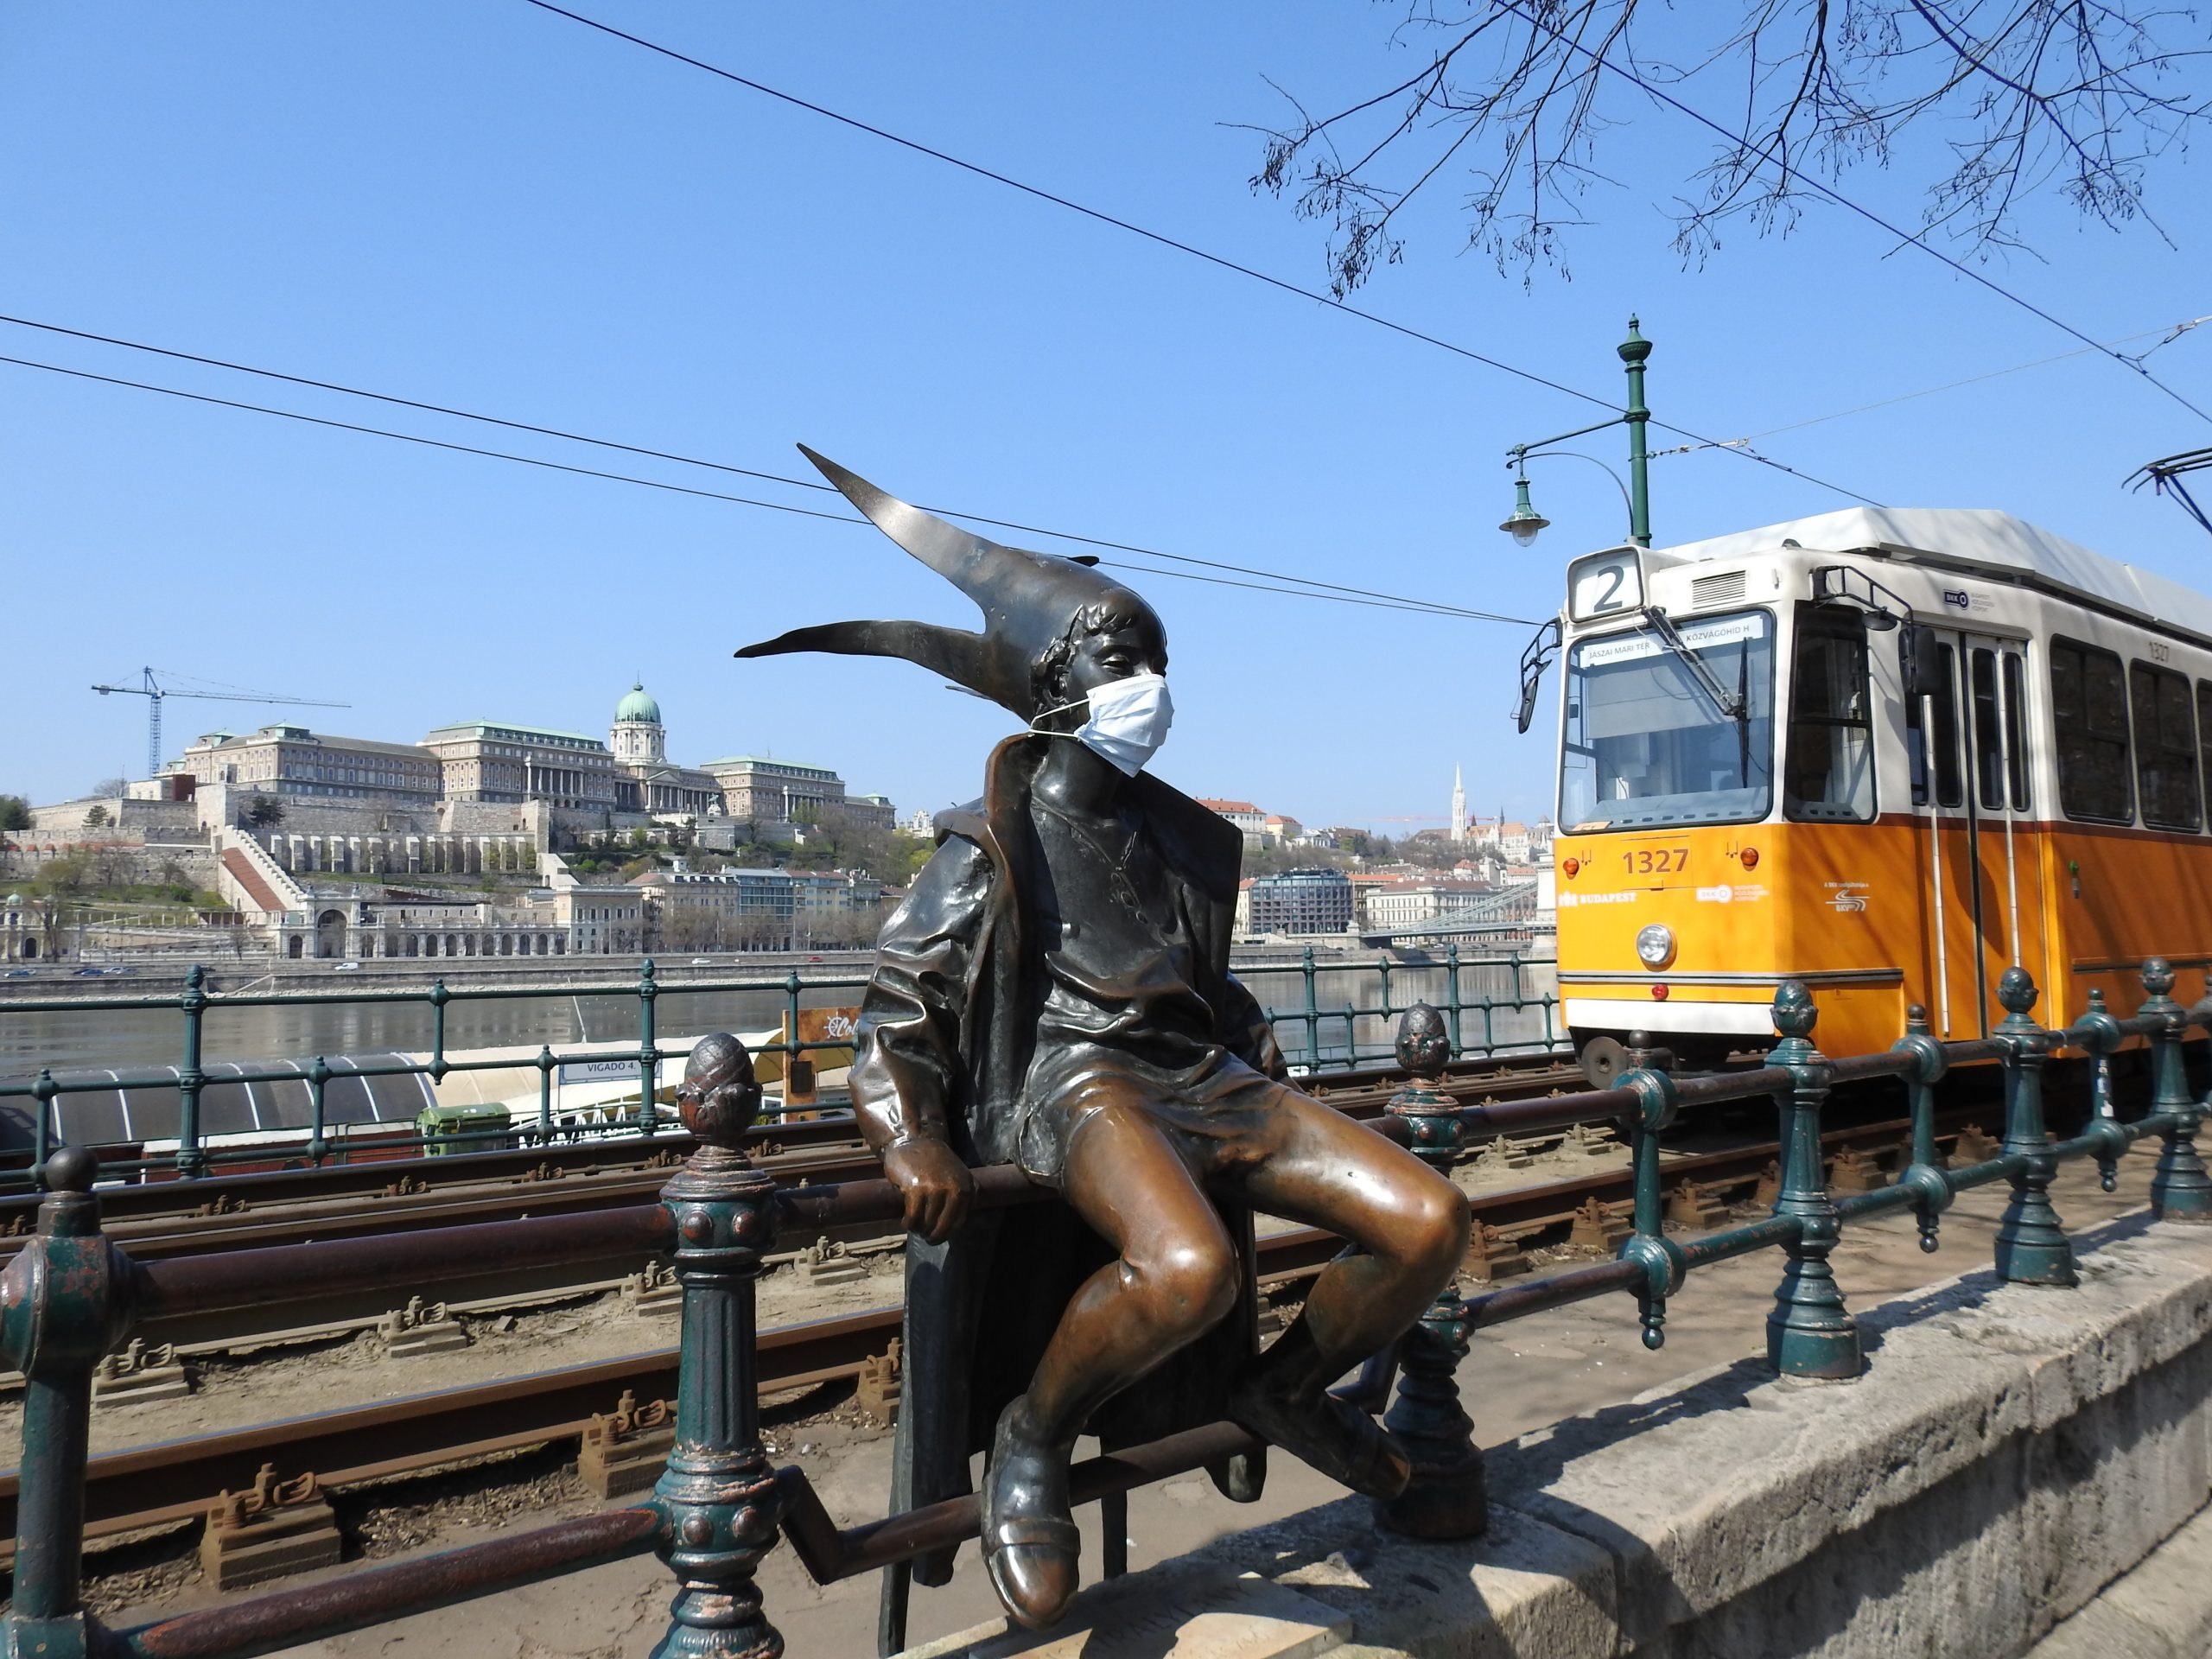 The little Princess statue wearing a mask on the Danube promenade with a tram and the Royal palace in the background